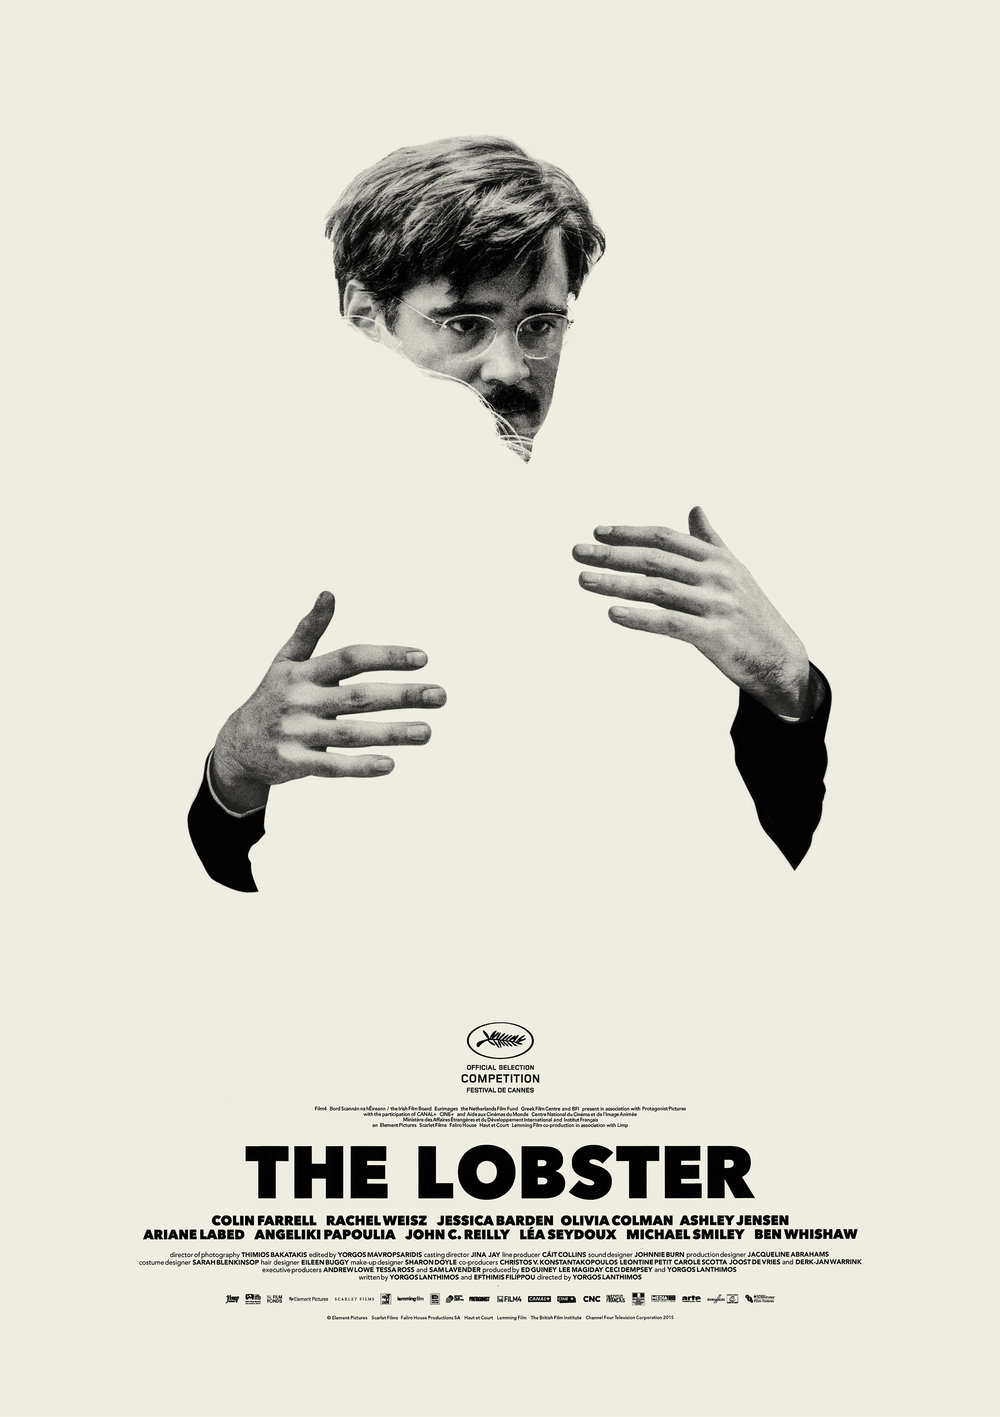 The Lobster is the 2015 A24 film directed by  Yorgos Lanthimos , starring  Colin Farrell